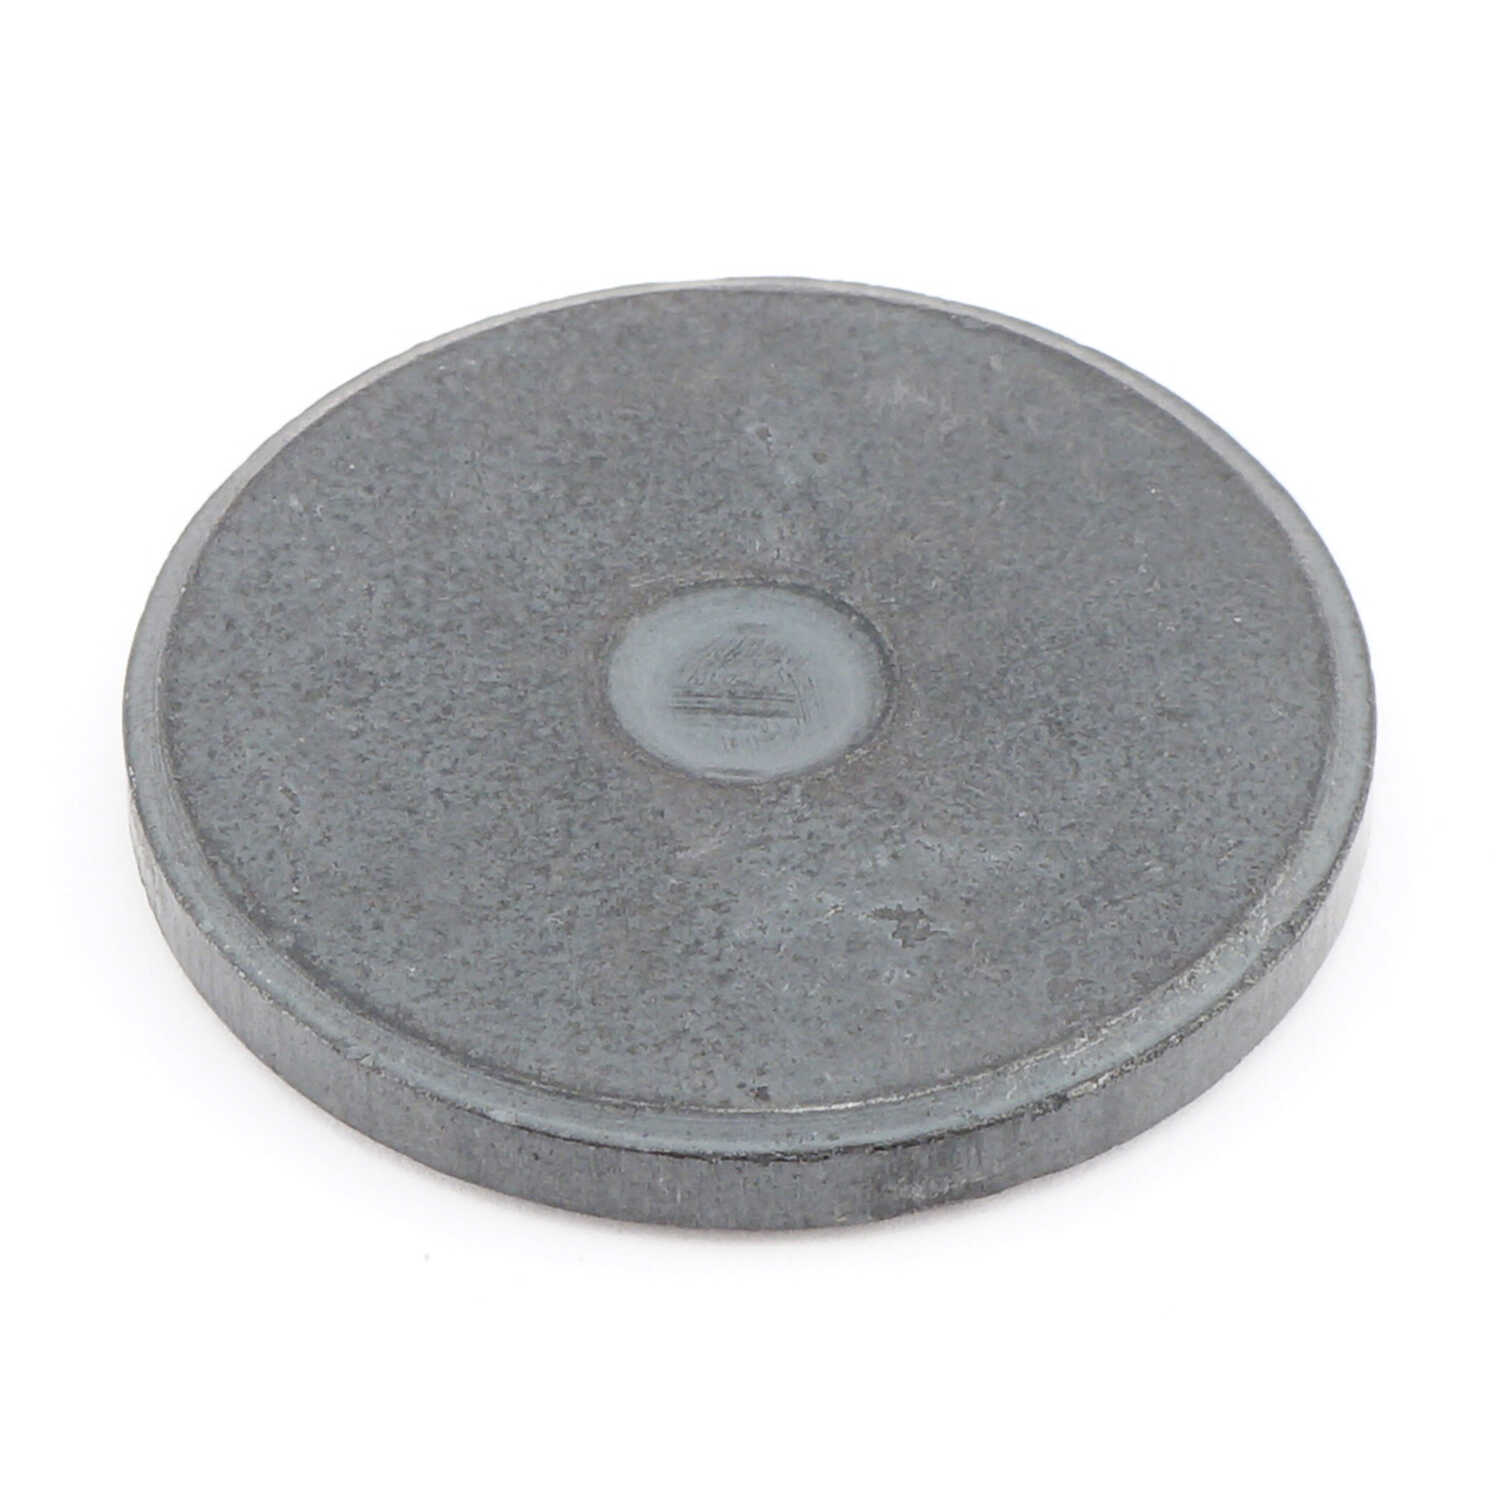 Master Magnetics  .187 in. Ceramic  Disc Magnets  0.7 lb. pull 1.05 MGOe Black  2 pc.